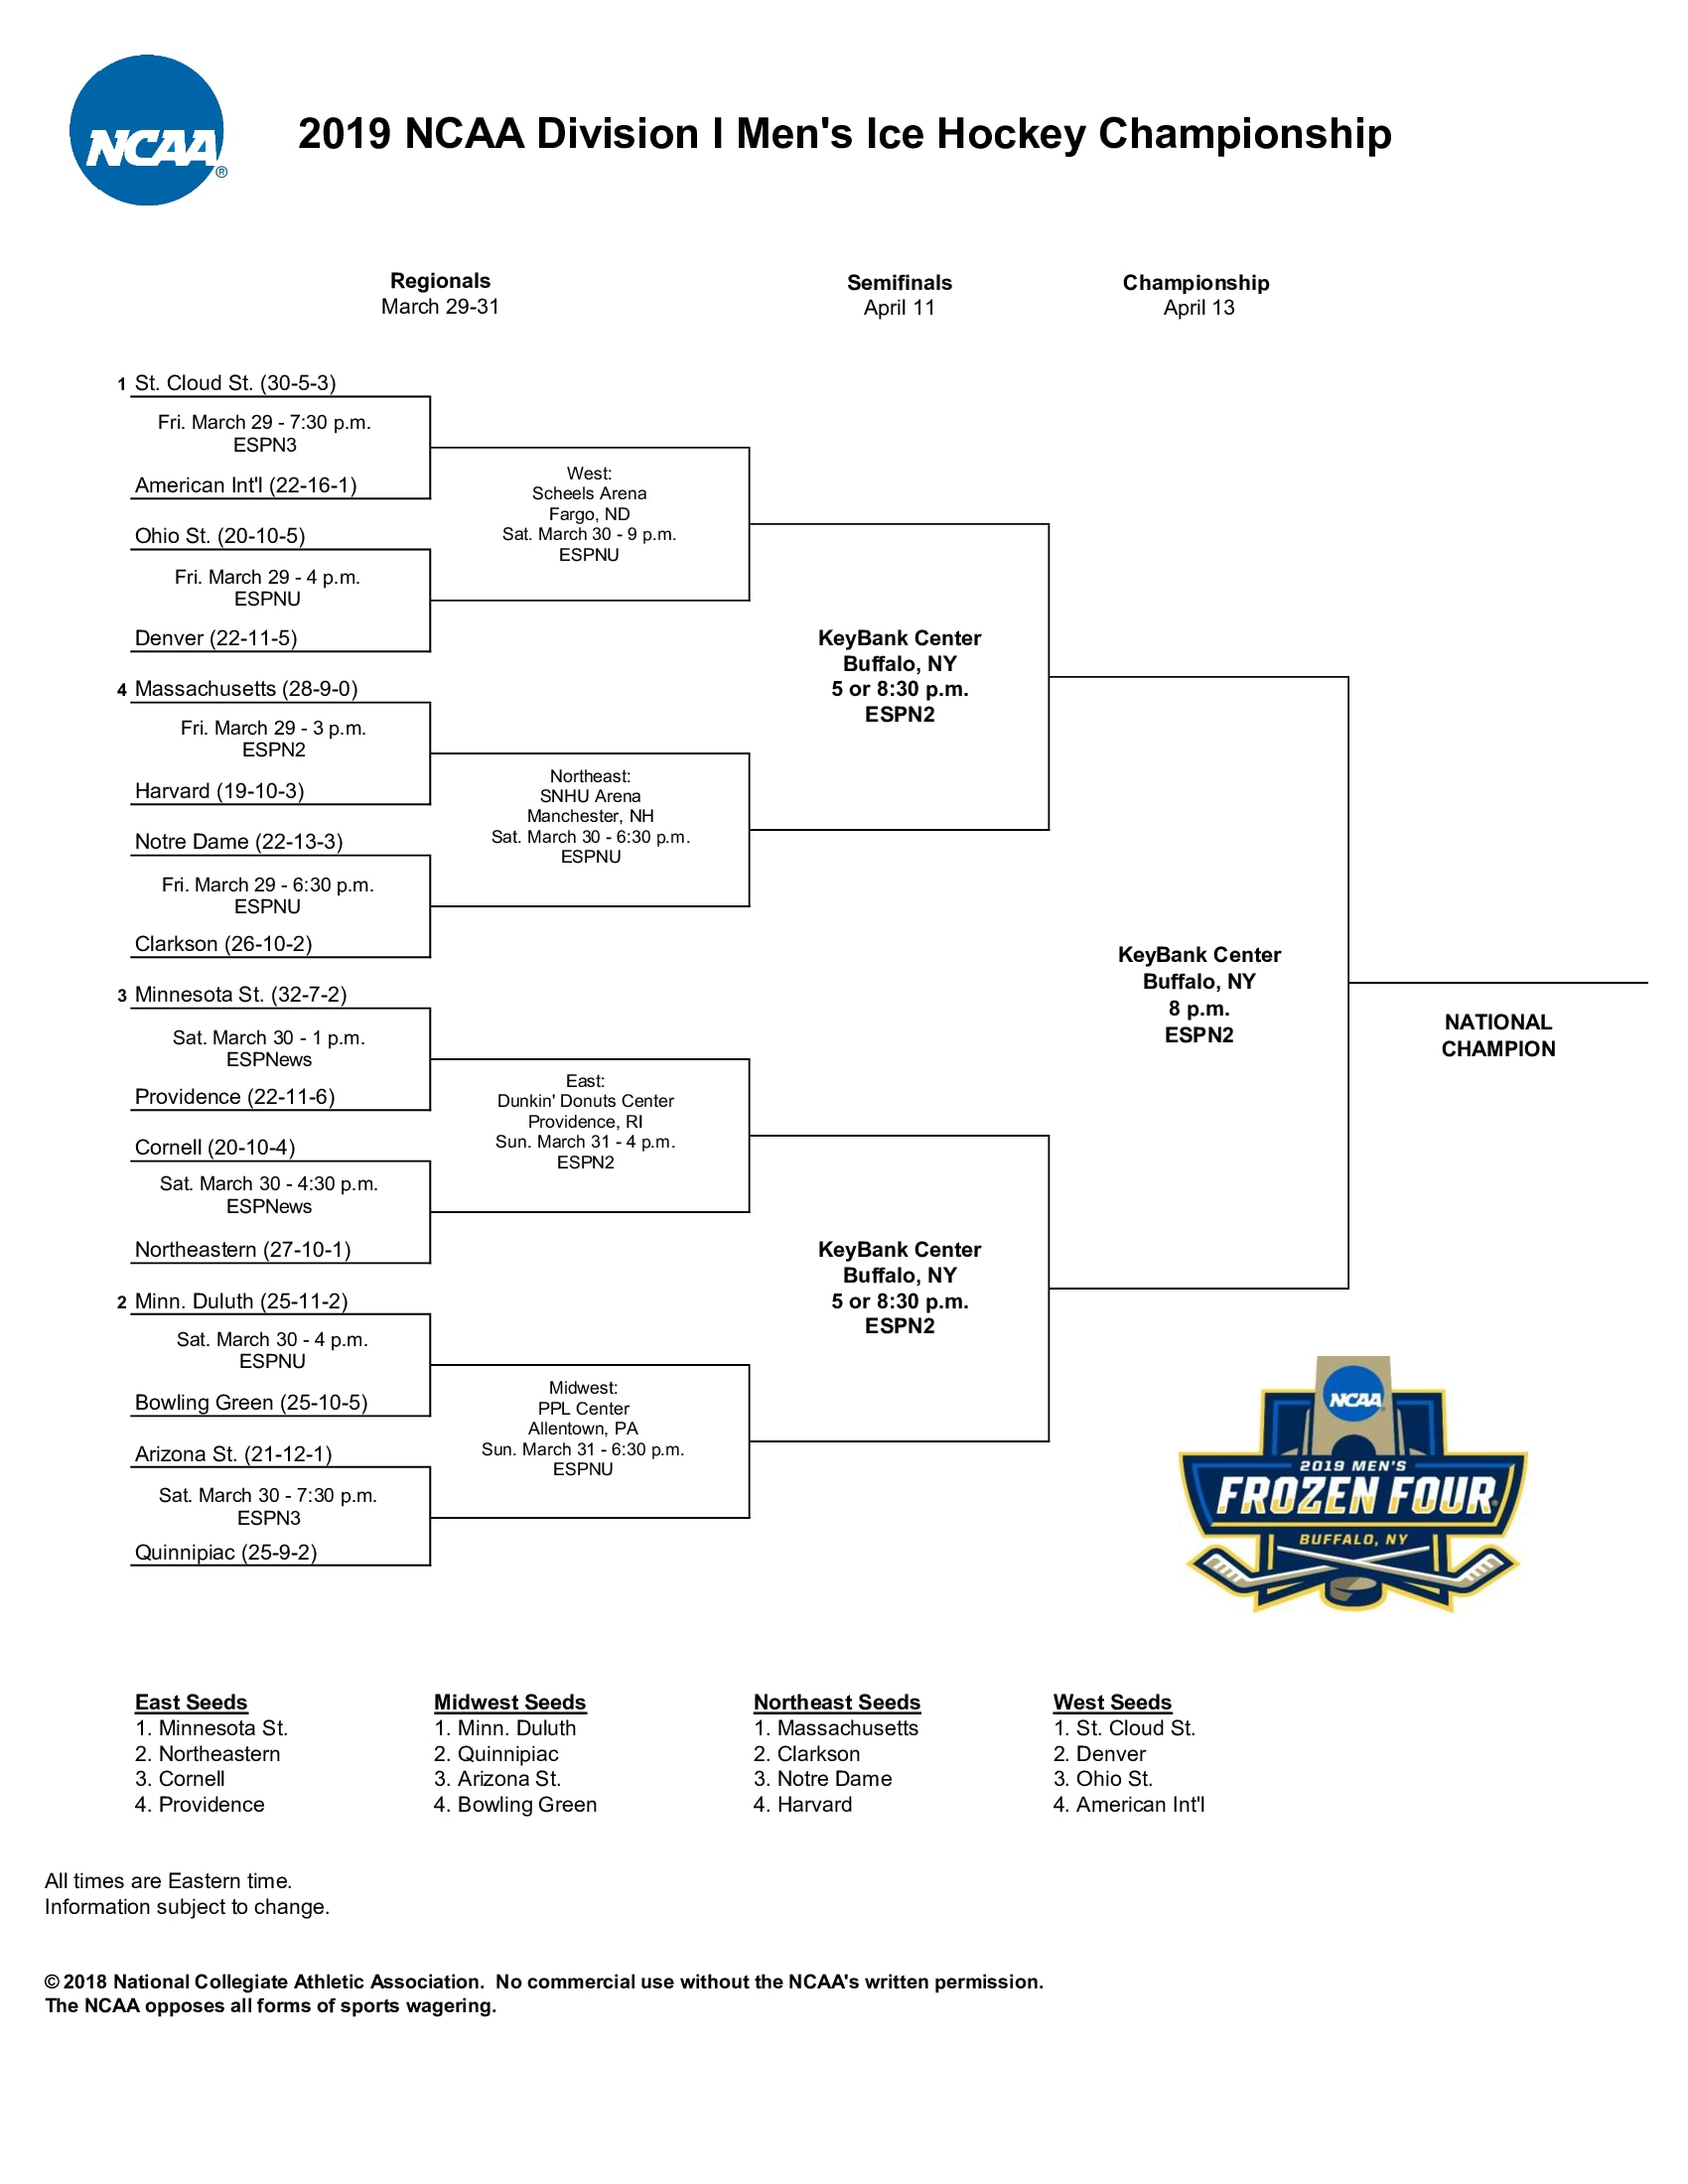 Frozen Four Bracket Printable 2019 Ncaa Hockey Tournament Pdf